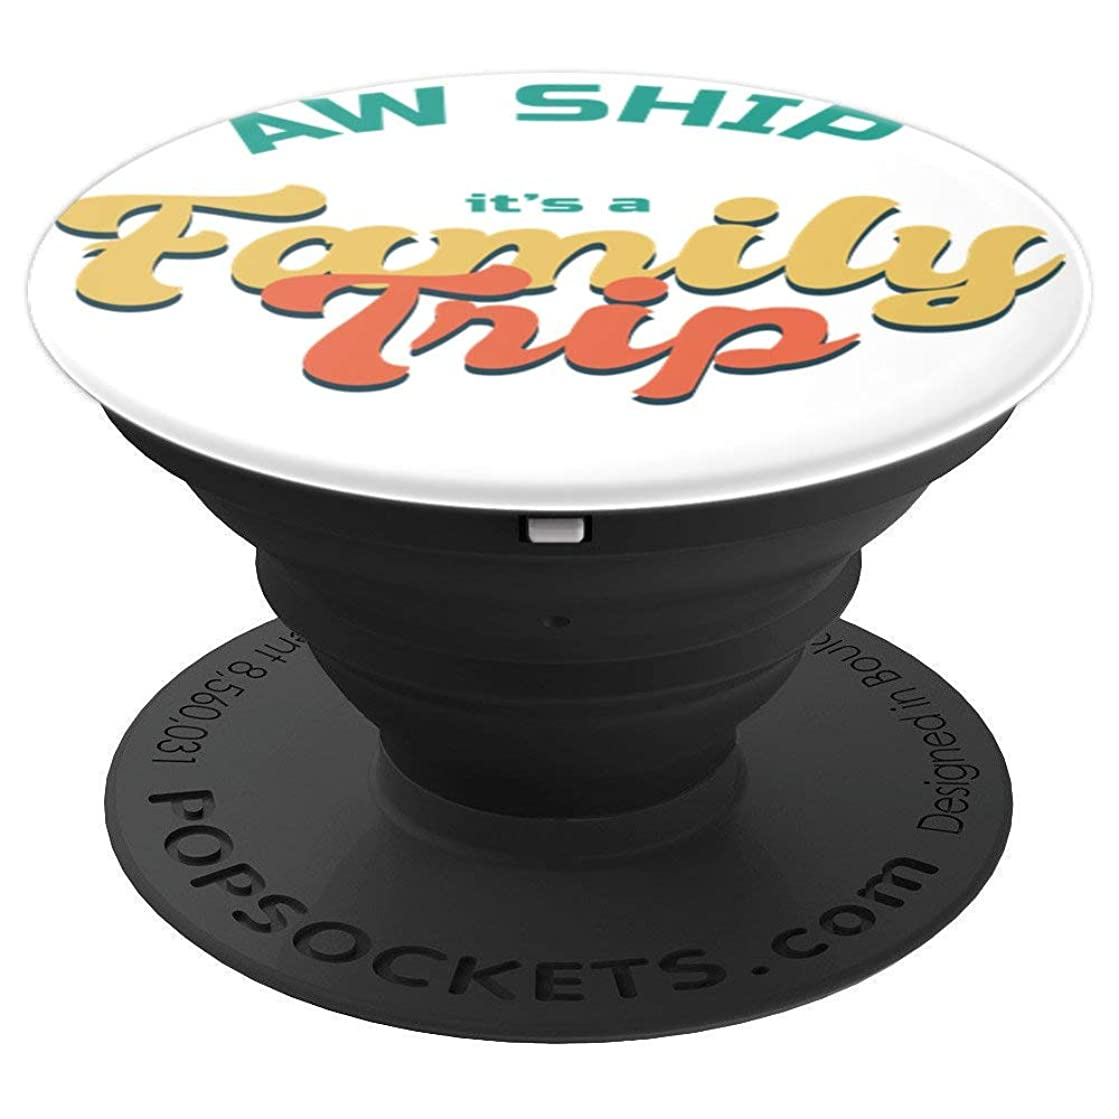 Funny Cruise Vacation Shirt - Aw Ship its a family trip PopSockets Grip and Stand for Phones and Tablets